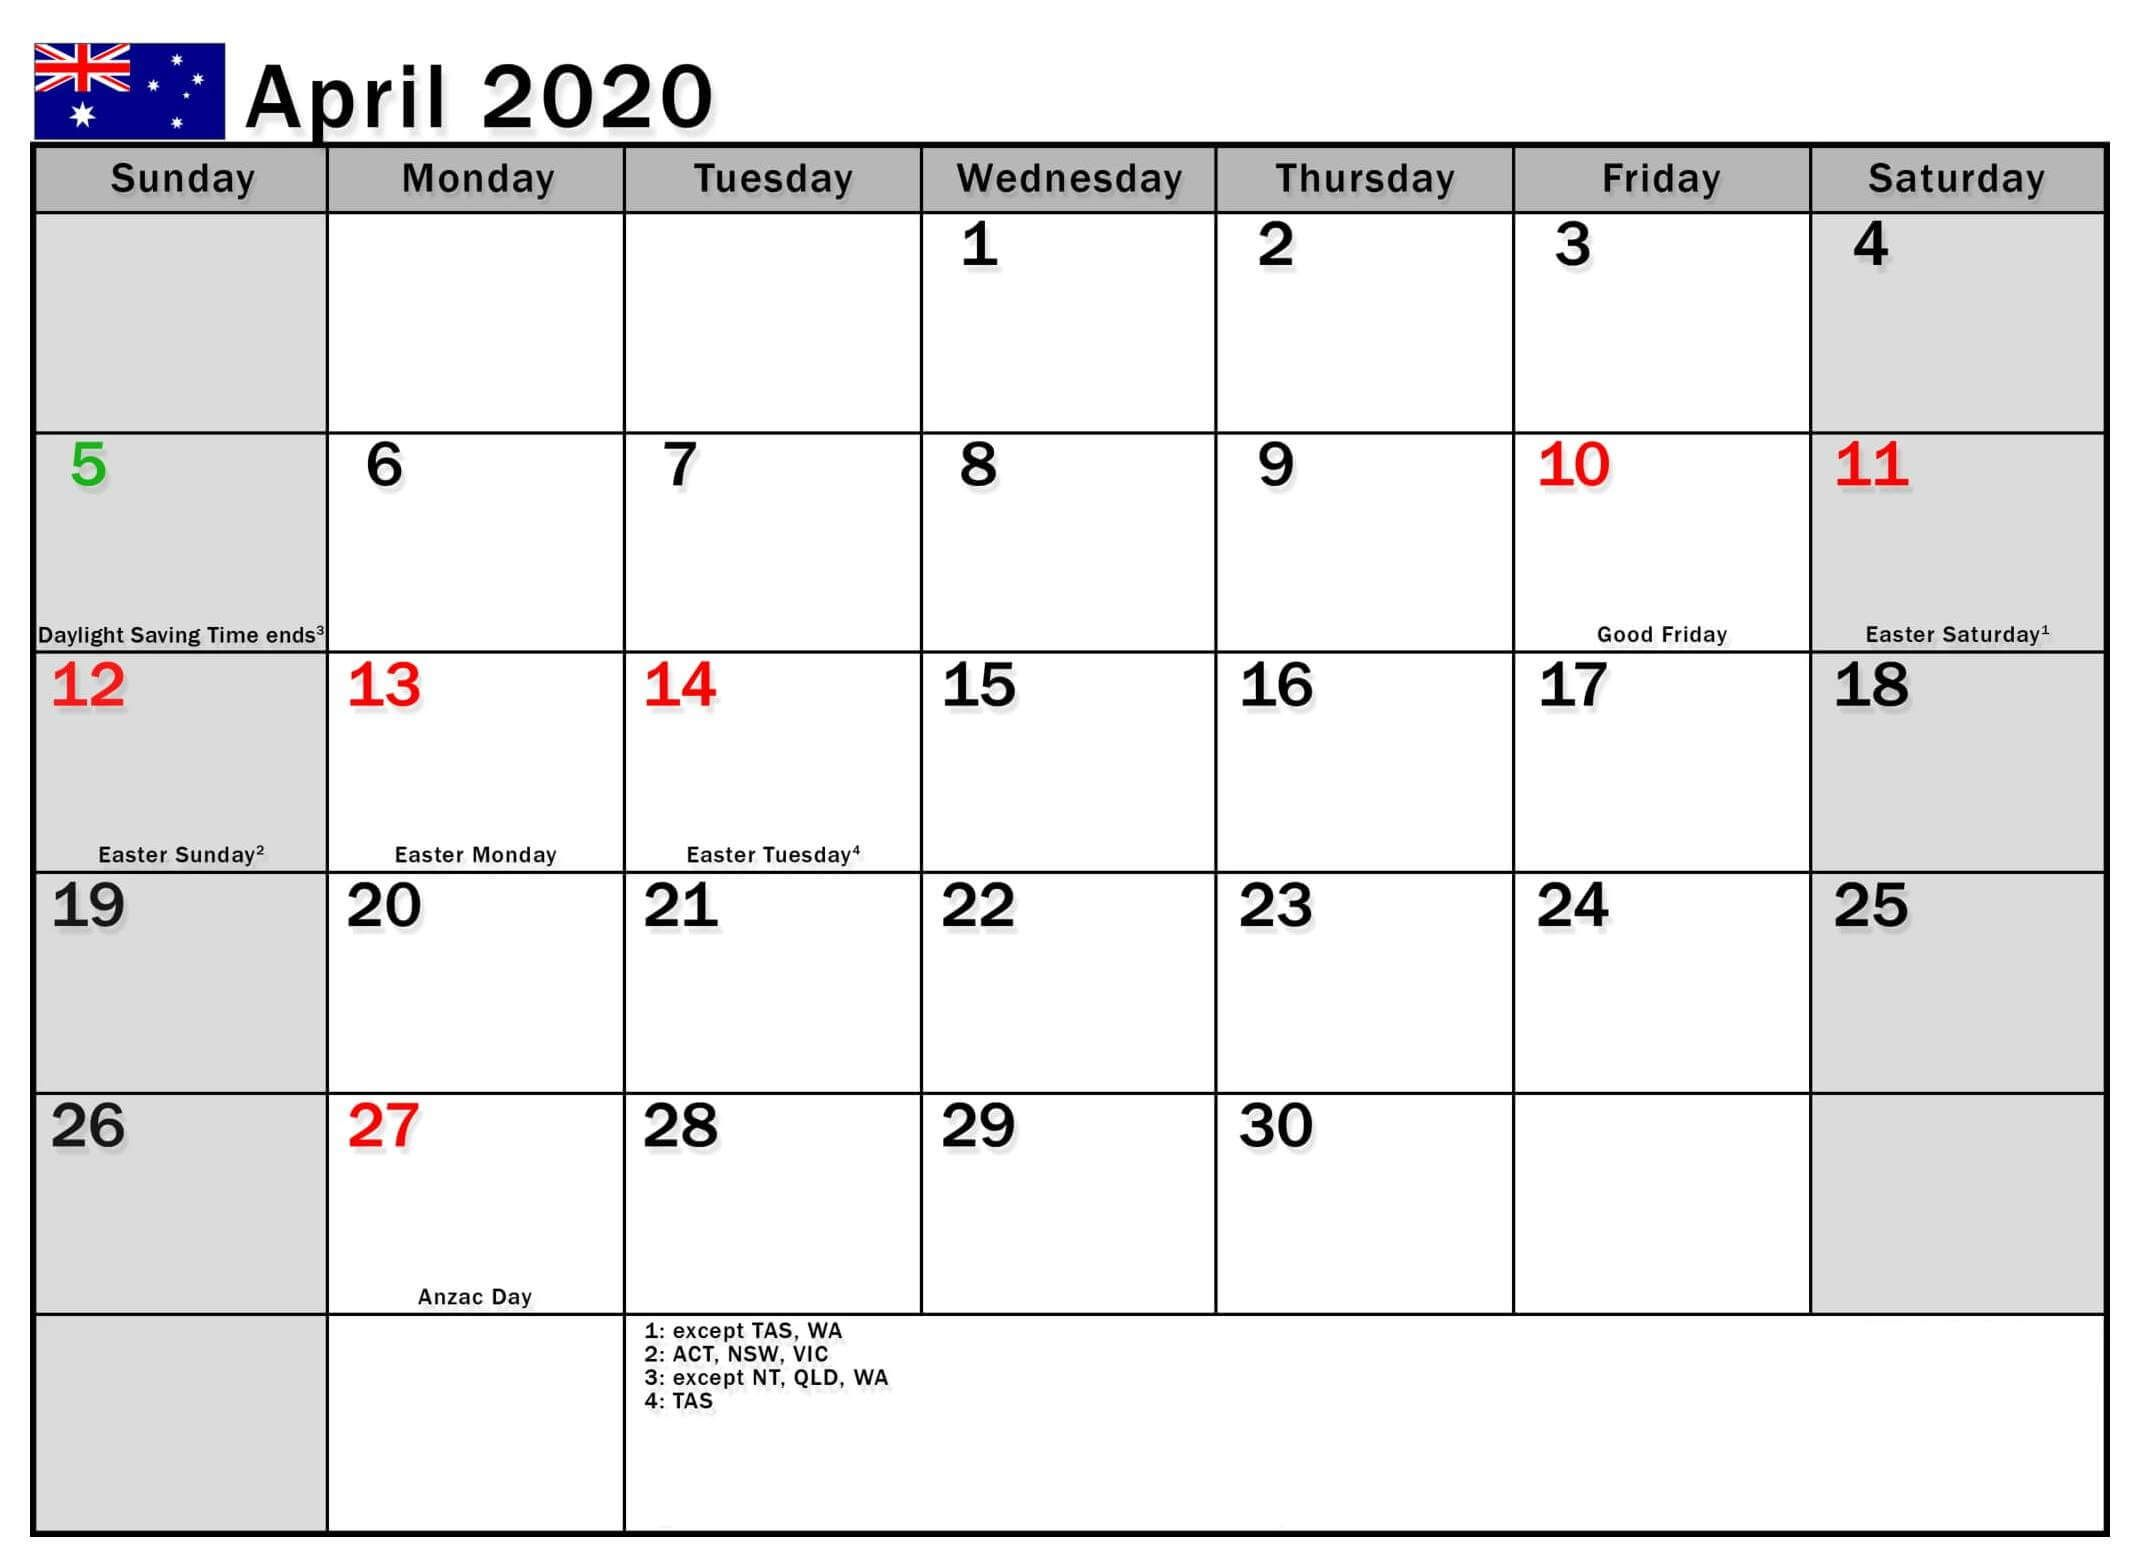 April 2020 Calendar With Australia Holidays In 2020 Federal Holiday Calendar Holiday Calendar Calendar